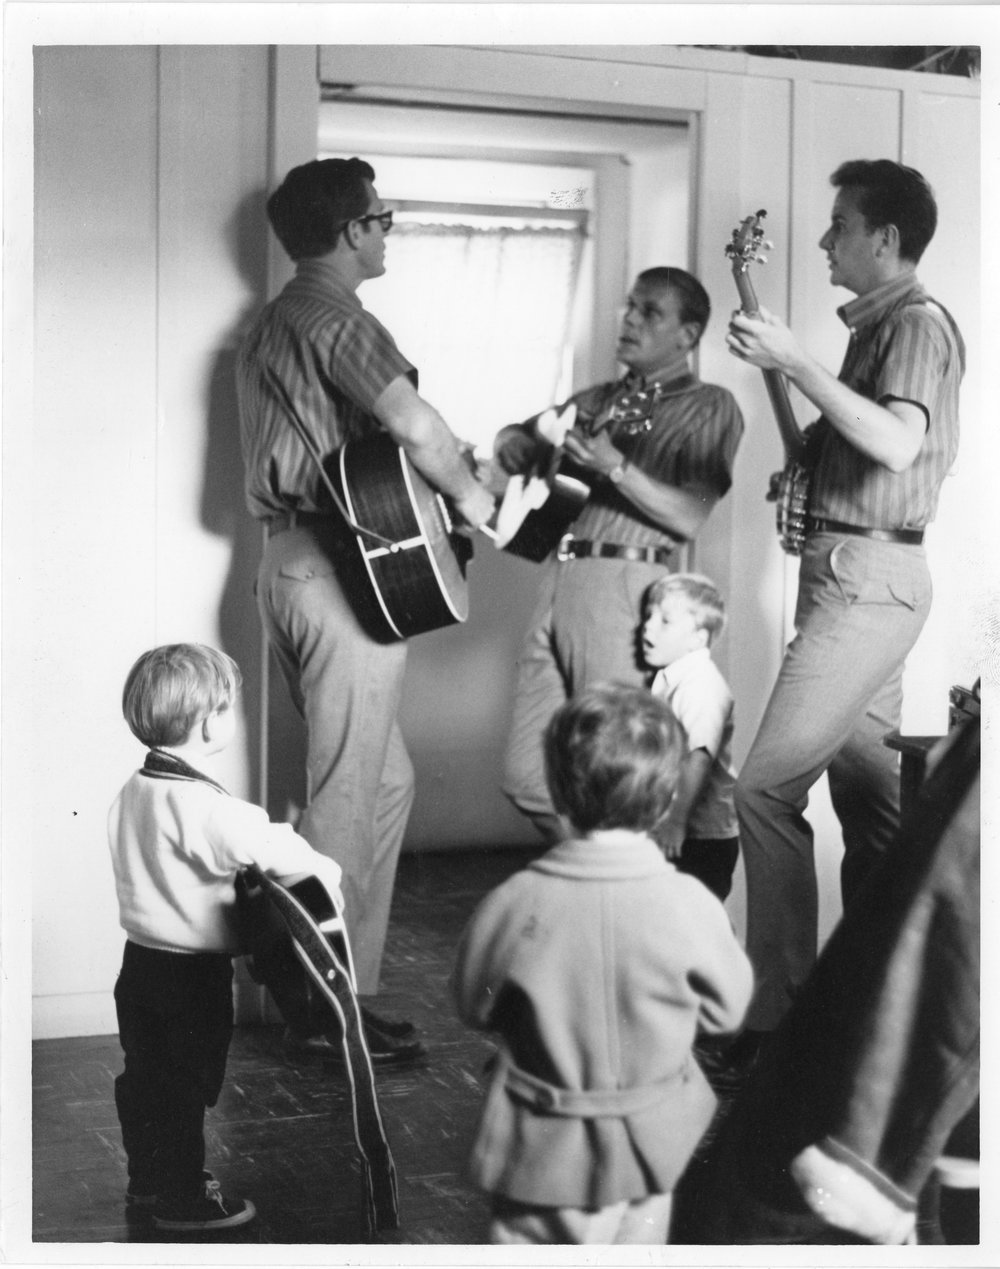 Josh Reynolds singing with the KT boys, next to his dad, center frame.  Mikael Stewart and Jodie Shane in foreground. (circa 1964)